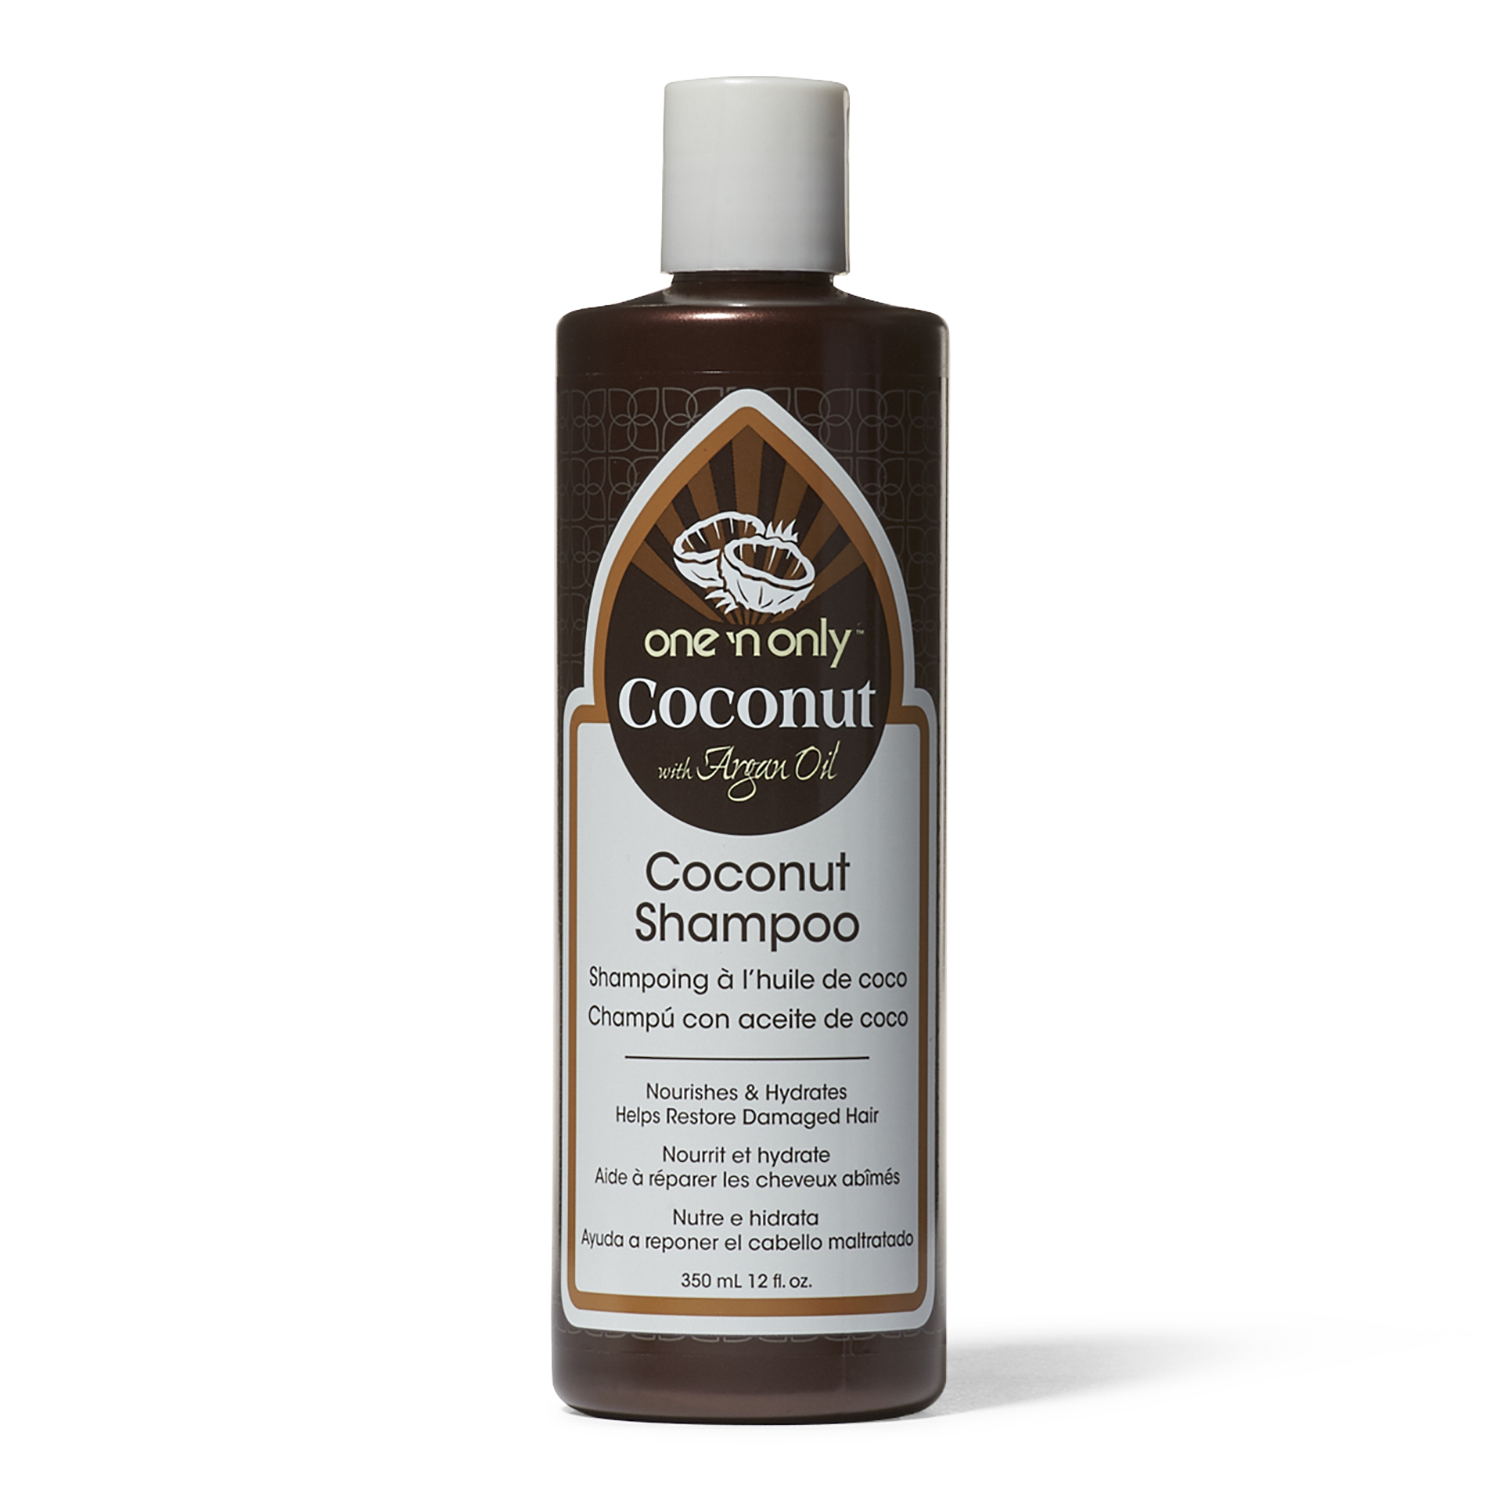 Coconut Argan Oil Coconut Shampoo By One N Only Shampoo